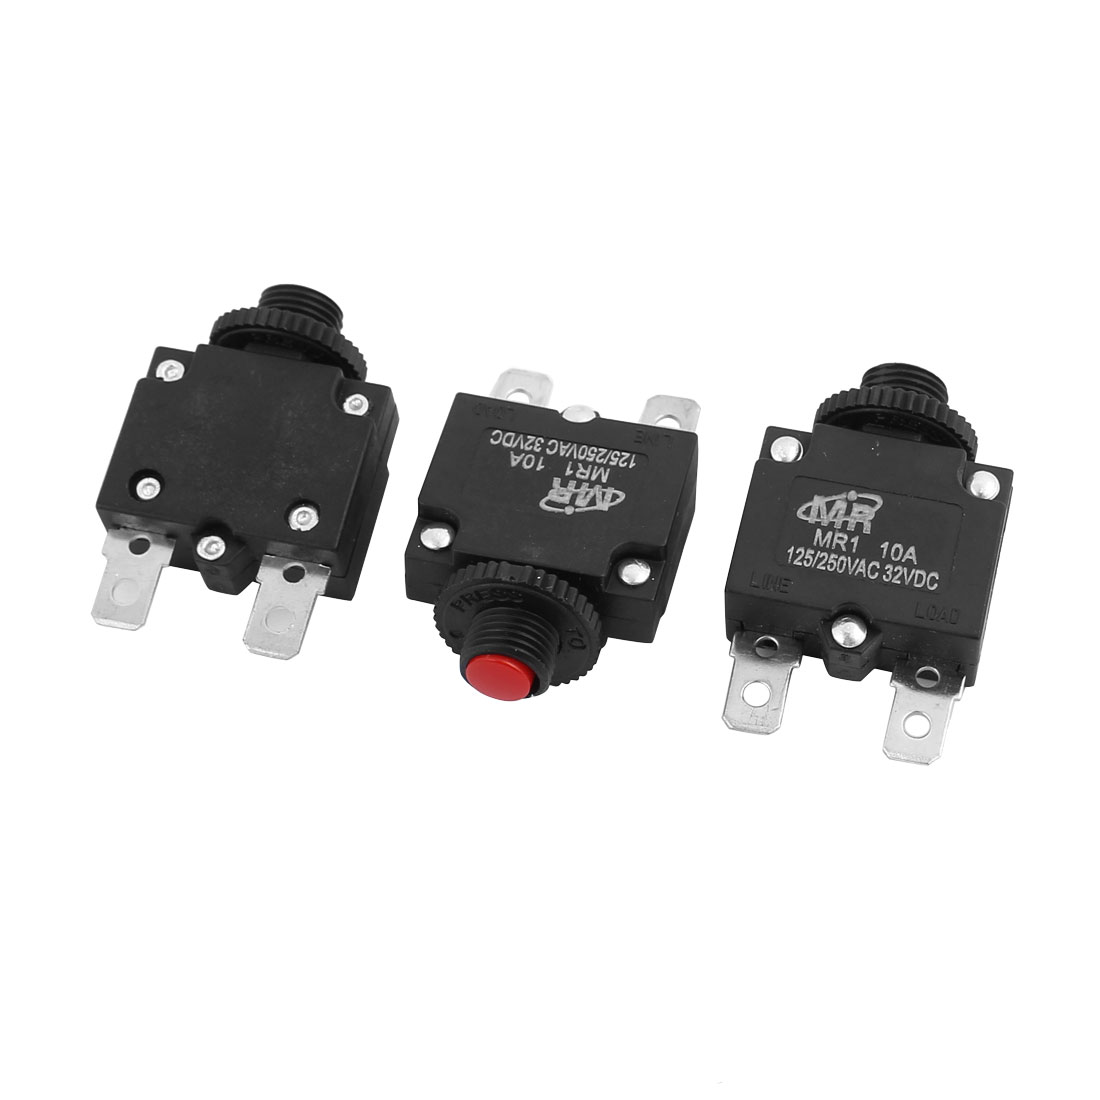 AC 125//250V DC 32V Miniature Thermal Circuit Breaker 7A-25A Overload Protector